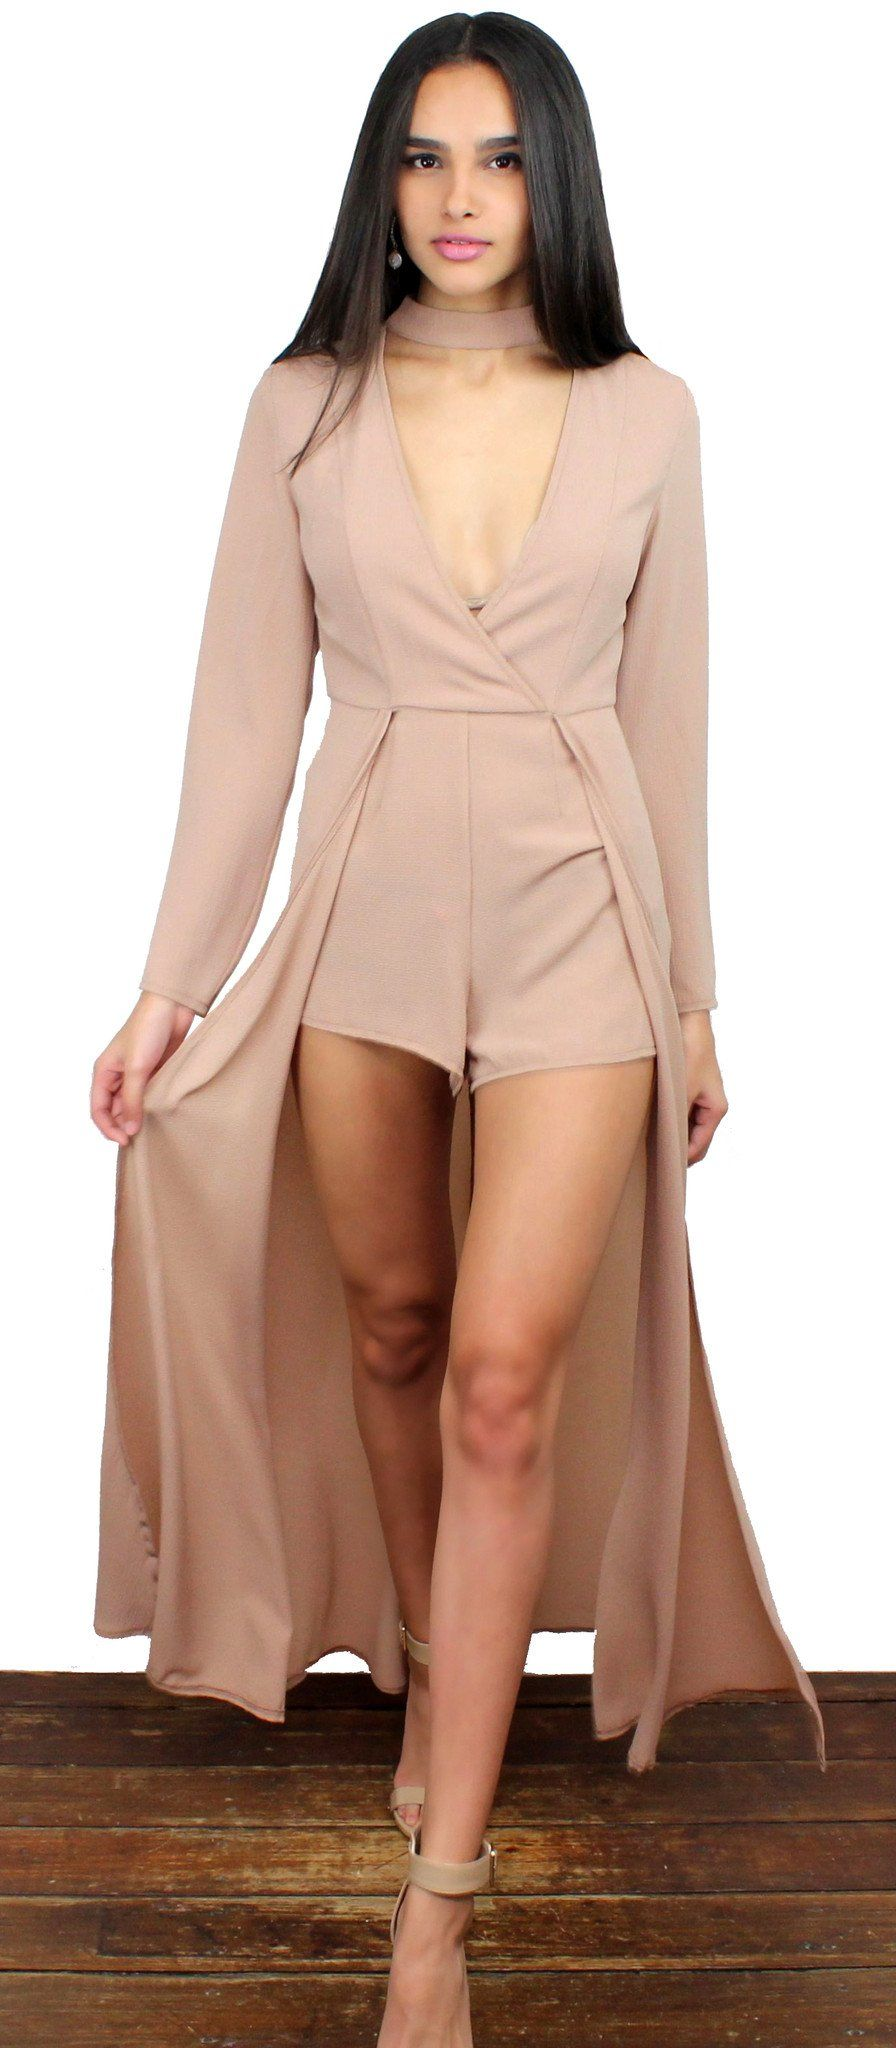 F I N A L S A L E ! Gorgeous Choker Nude Maxi-Romper featuring Choker, V-Neck & Long Sleeves at the Top Short and Over Layer Skirt at the Bottom Invisible Zipper at the Back Material: Polyester Color: NudeModel is wearing a Small Model Info: Height: 5'8 | Bust: 32 | Waist: 24 | Hip: 35 | Size Guide Product Code: 2623|2624|2625 FIT: This garment fits true to size BUST: Not Fitted - Great for any cup size. WAIST: Fitted - Fitted at natural waist. HIPS: Not Fitted - Room for hips. UNDERGARMENTS: Ma